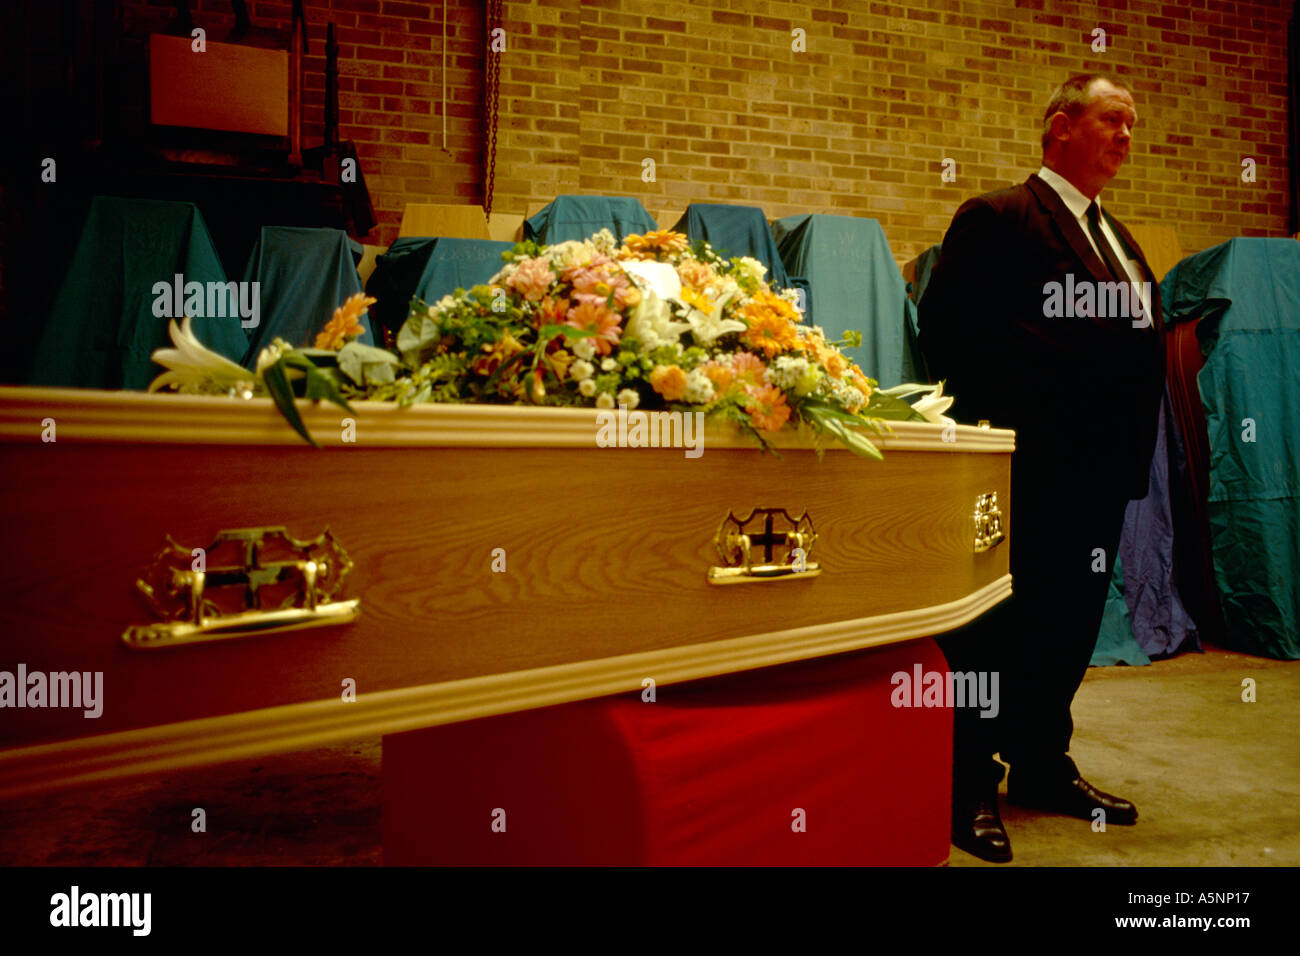 A coffin awaits funeral. - Stock Image